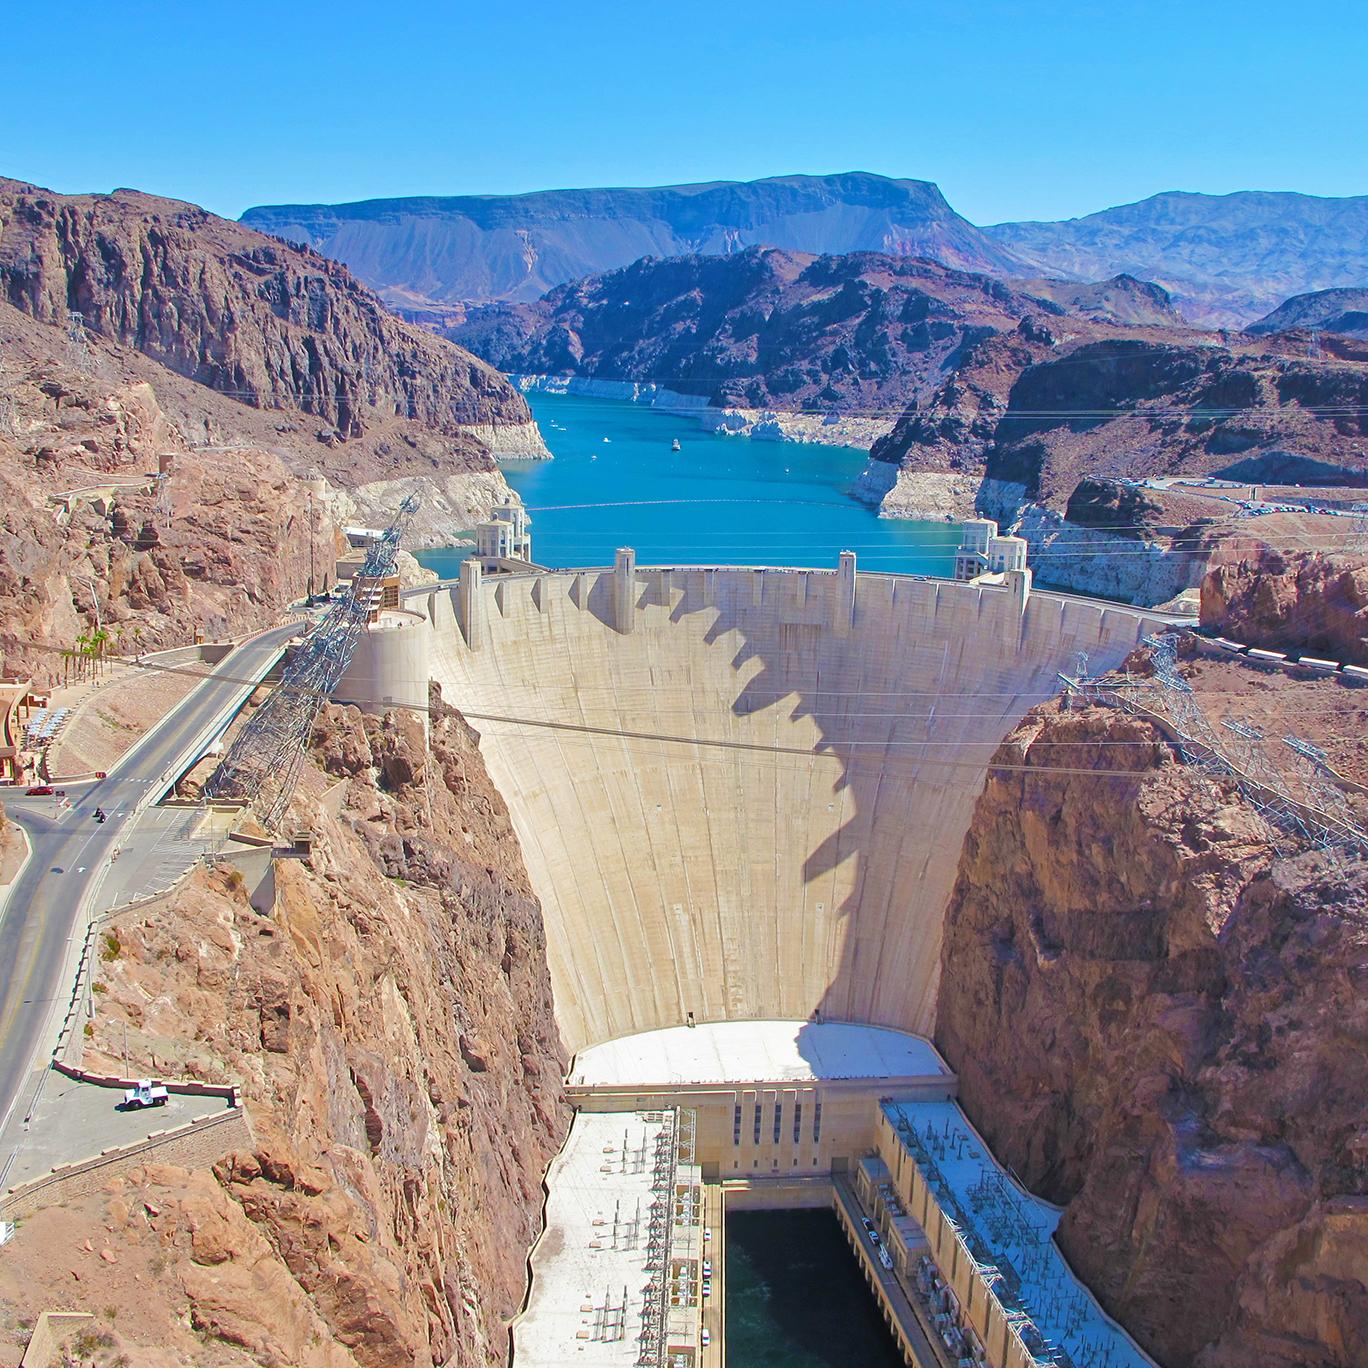 Views of the hoover dam in Nevada